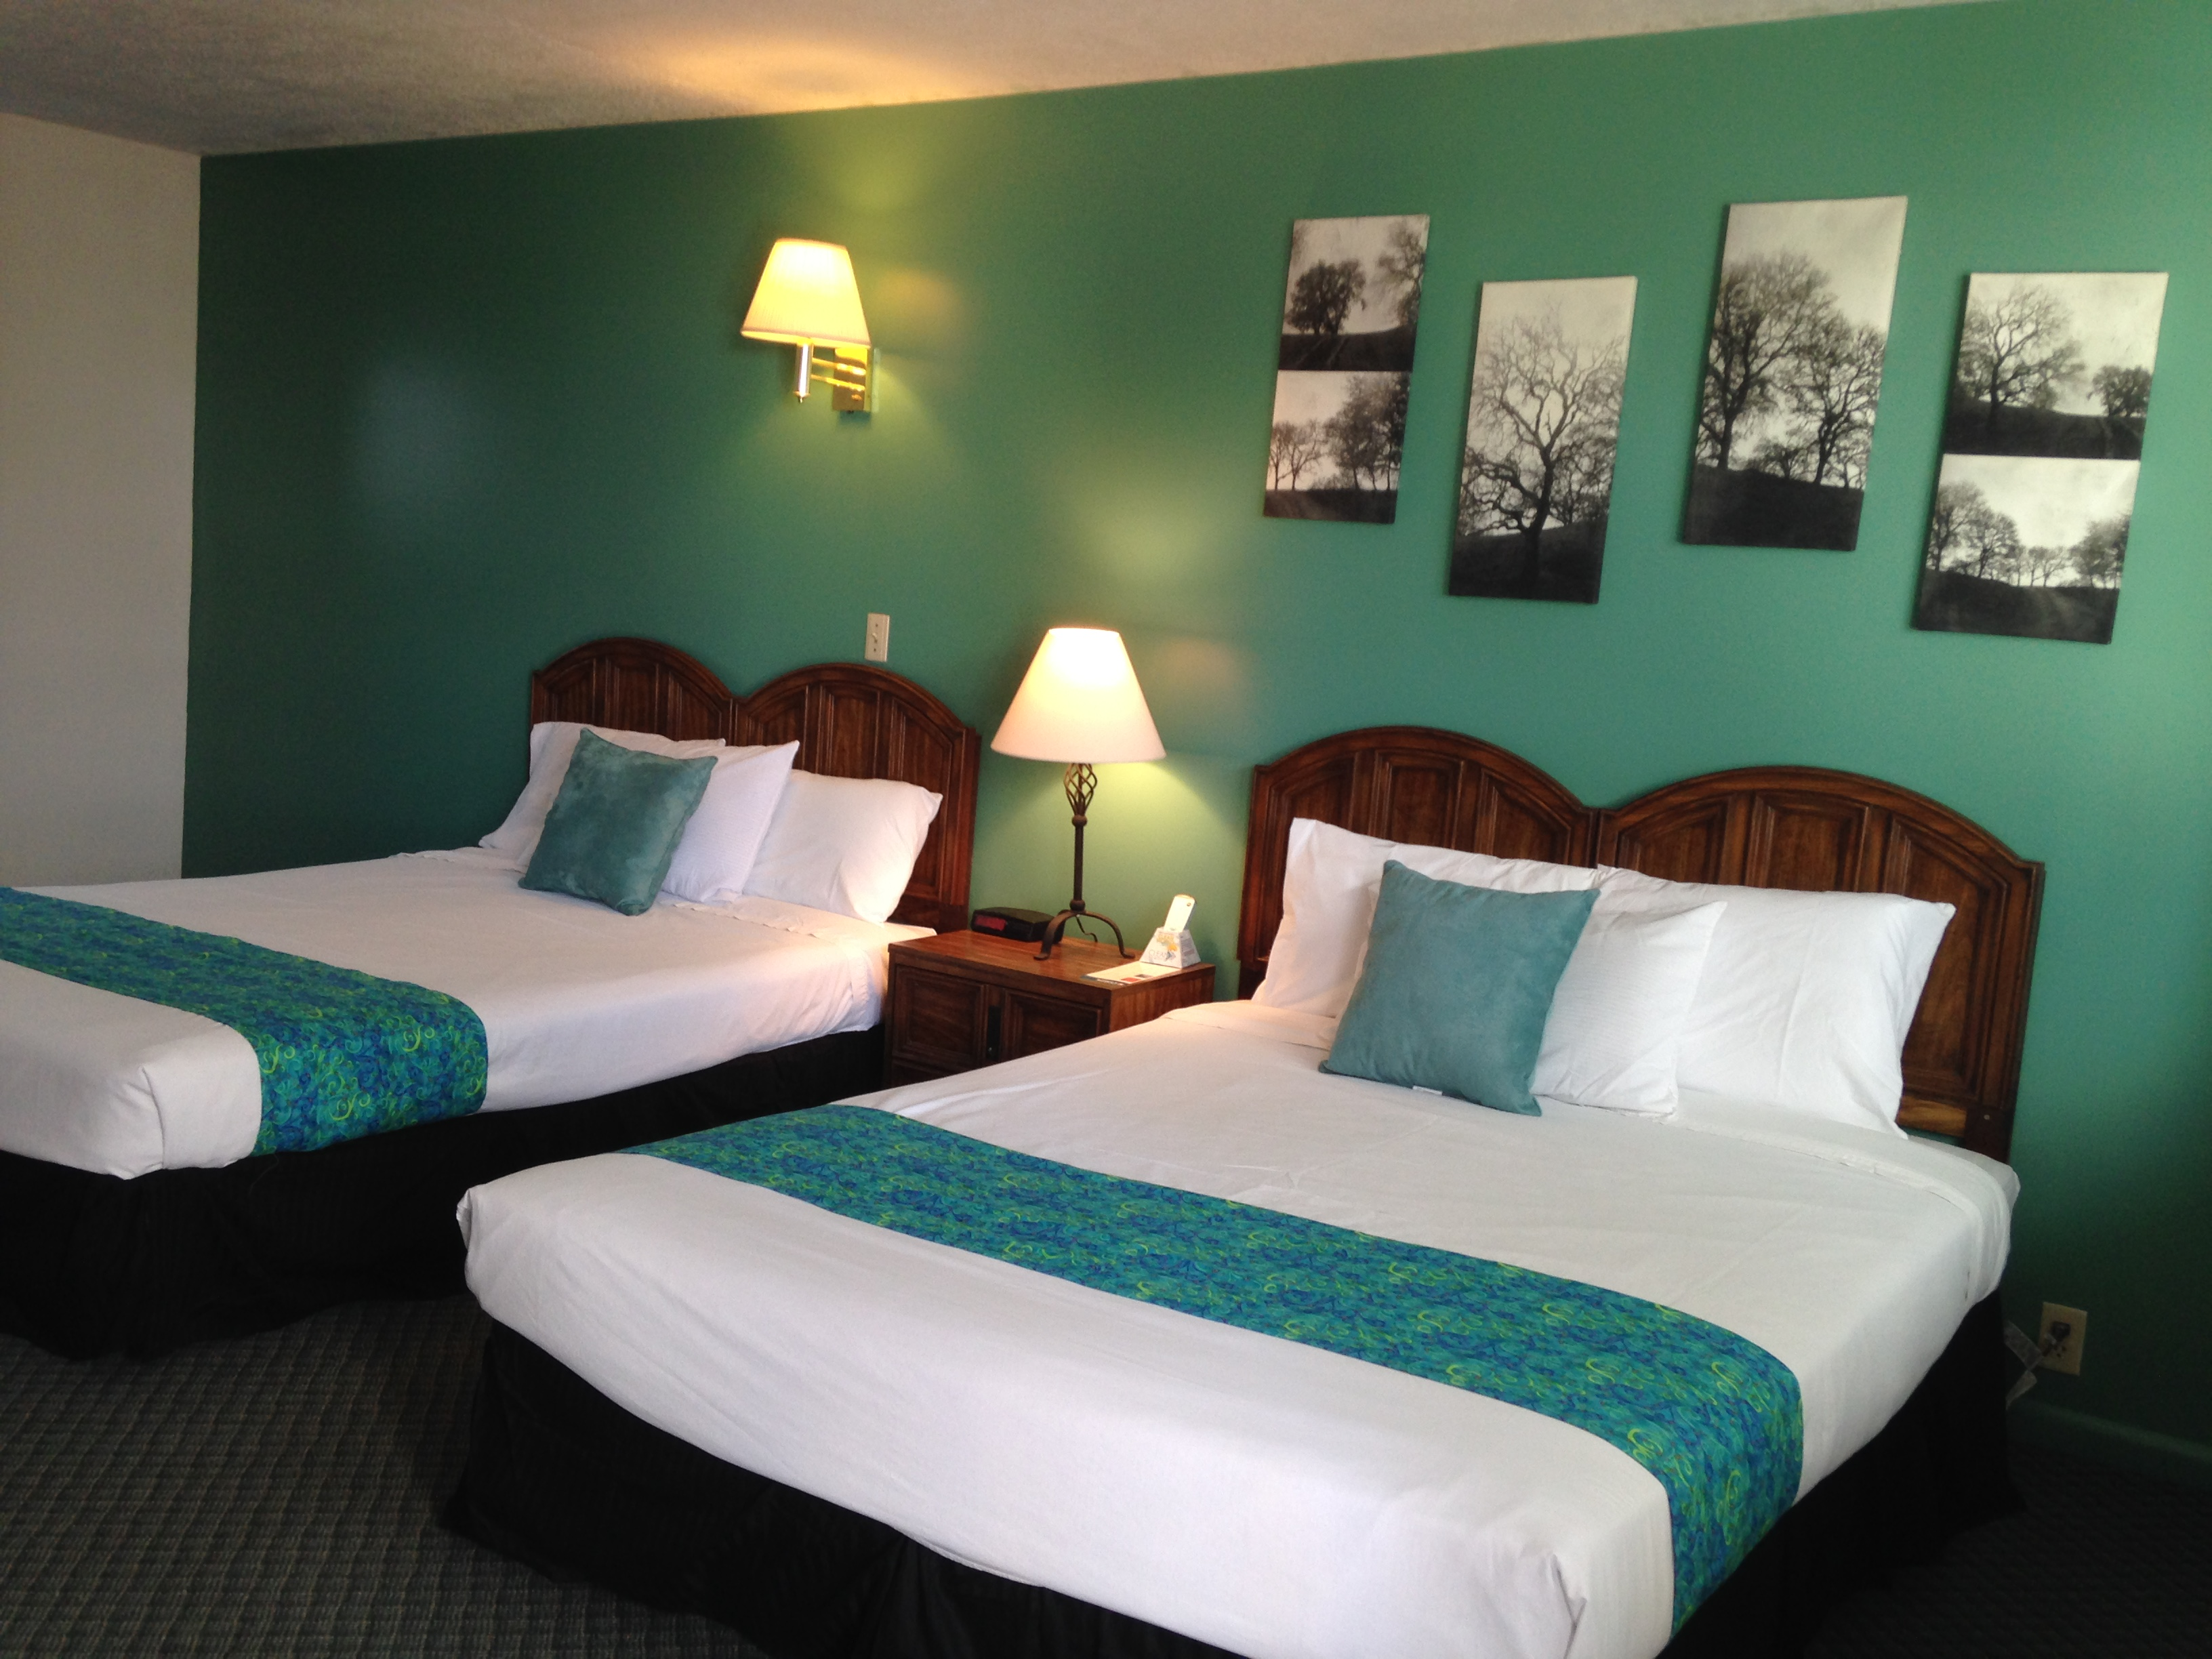 rest assured inns and suites